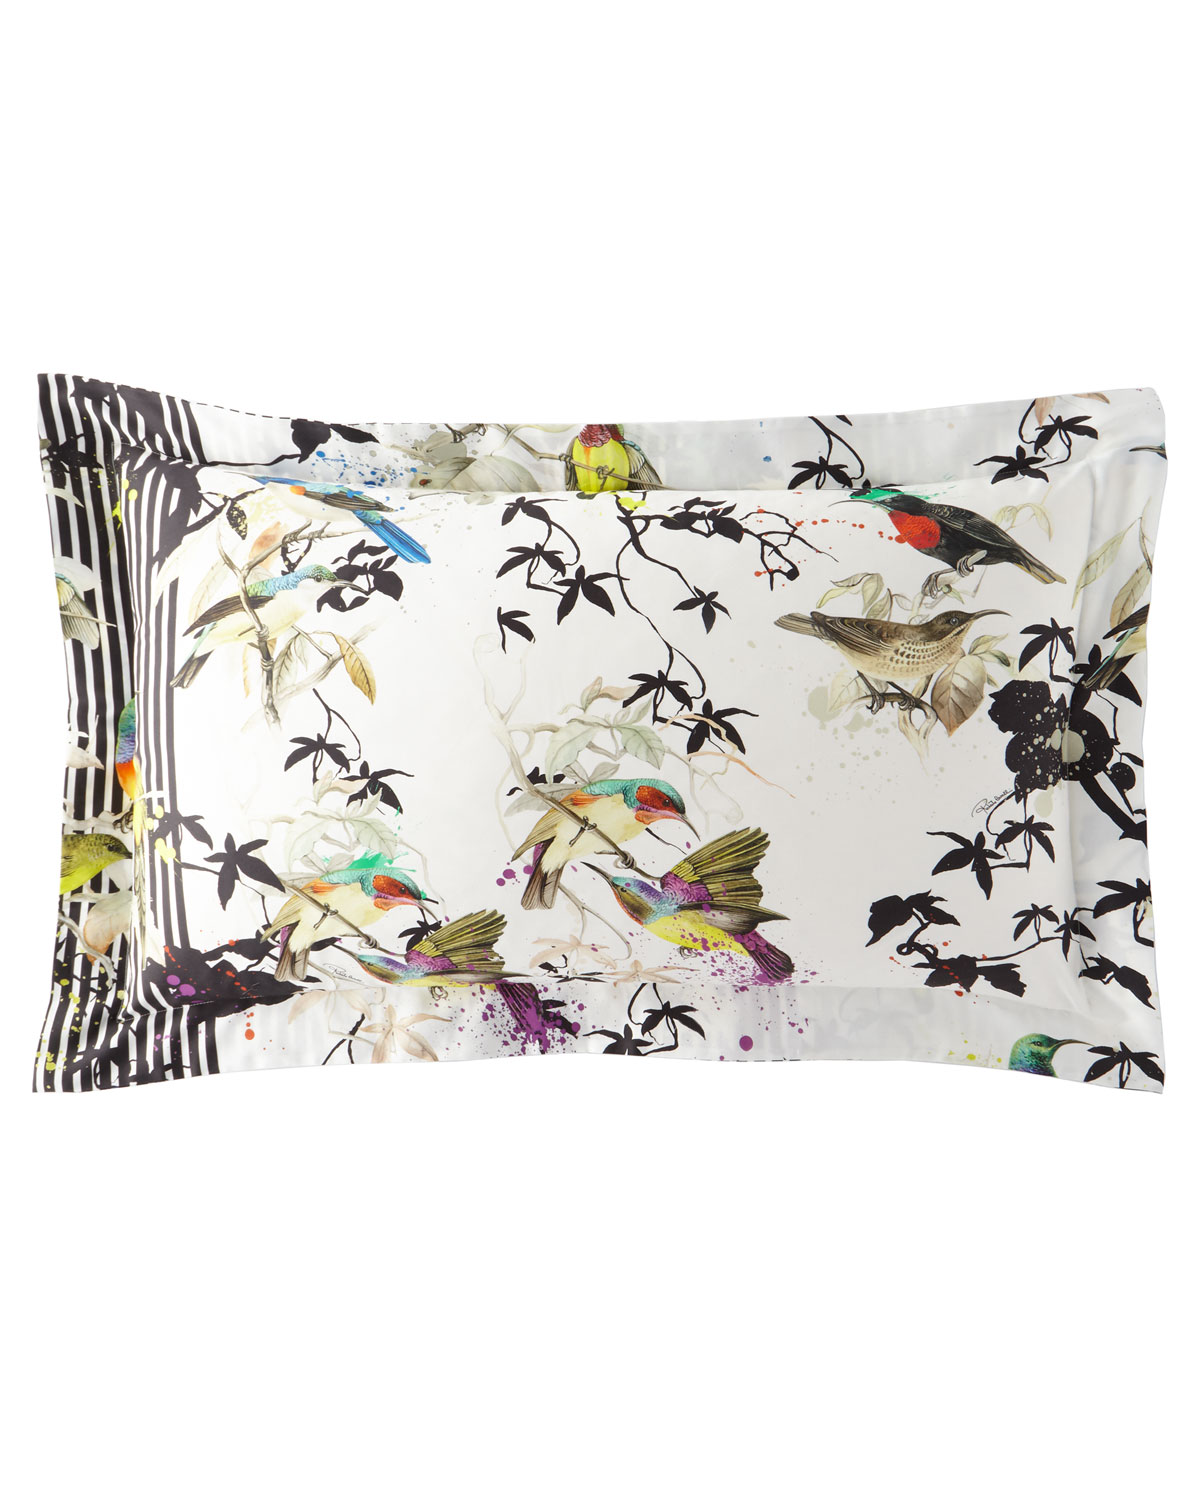 Roberto Cavalli BIRDS RAMAGE KING SHAMS, SET OF 2